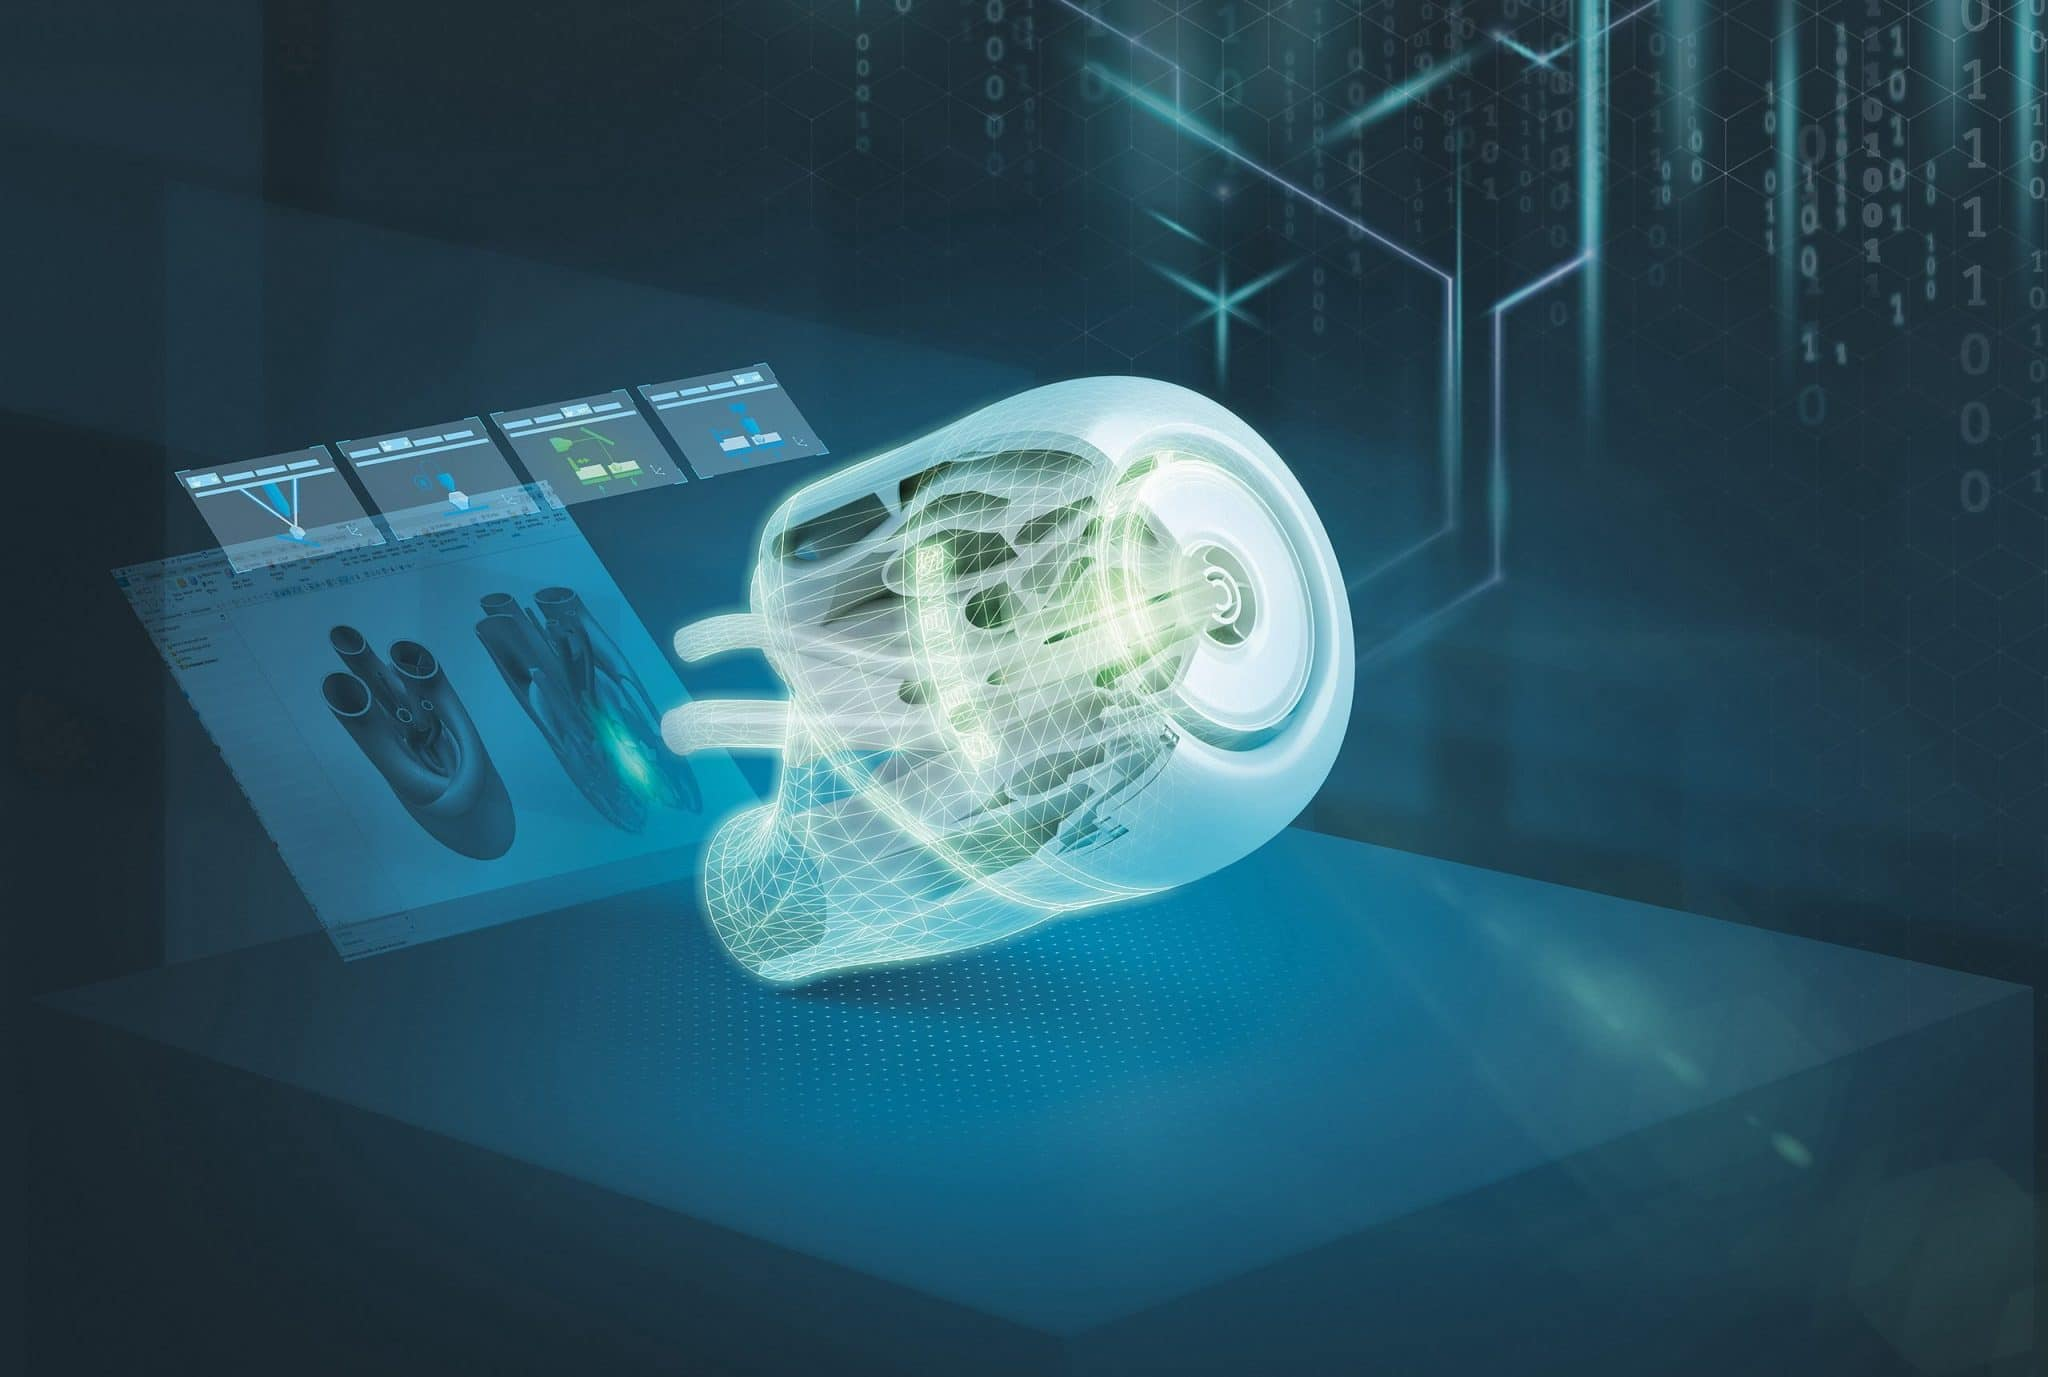 Siemens Digital Enterprise portfolio of seamless integrated solutions for additive manufacturing